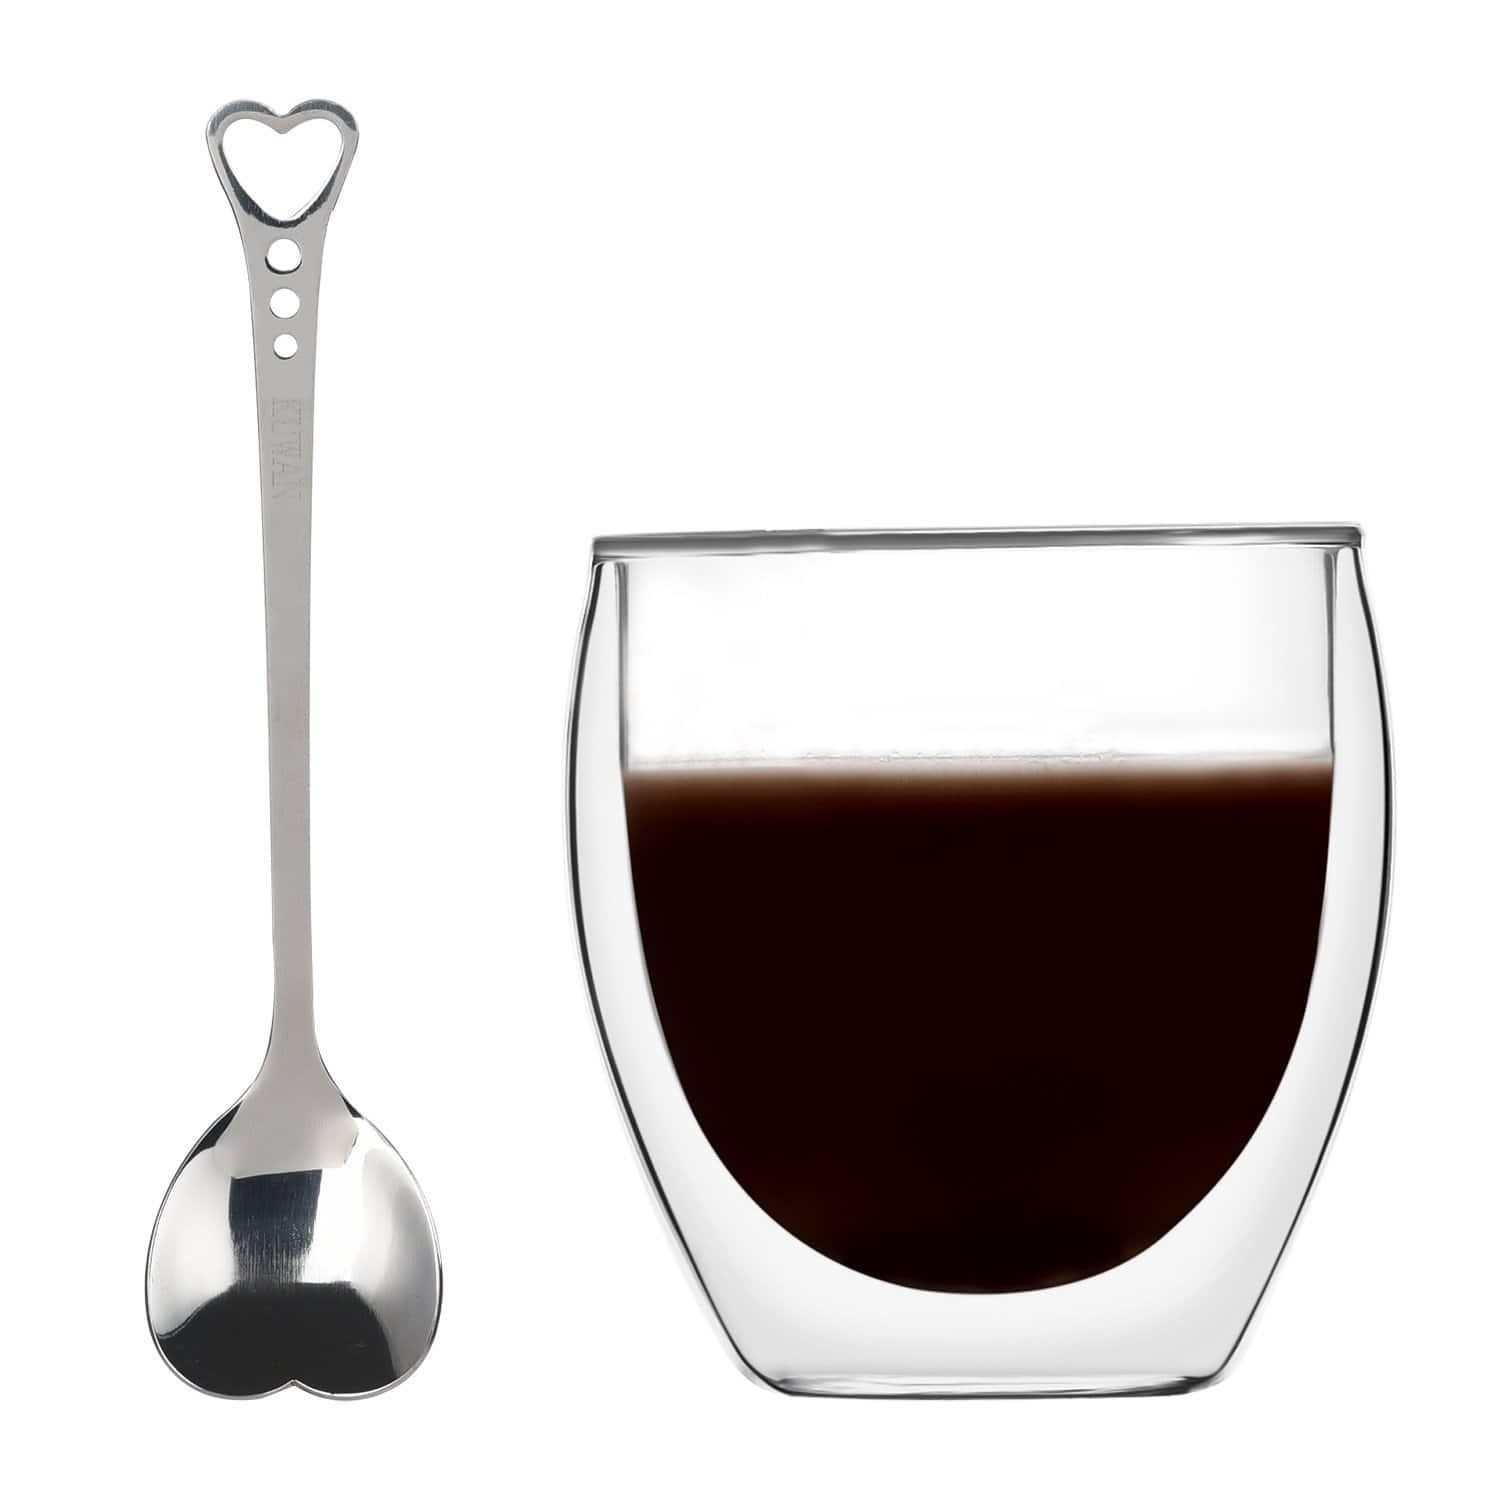 Double-Walled Coffee Cup 8.5 Ounce Espresso Mug Adiabatic Glass with Spoon $5.70 AC @ Amazon